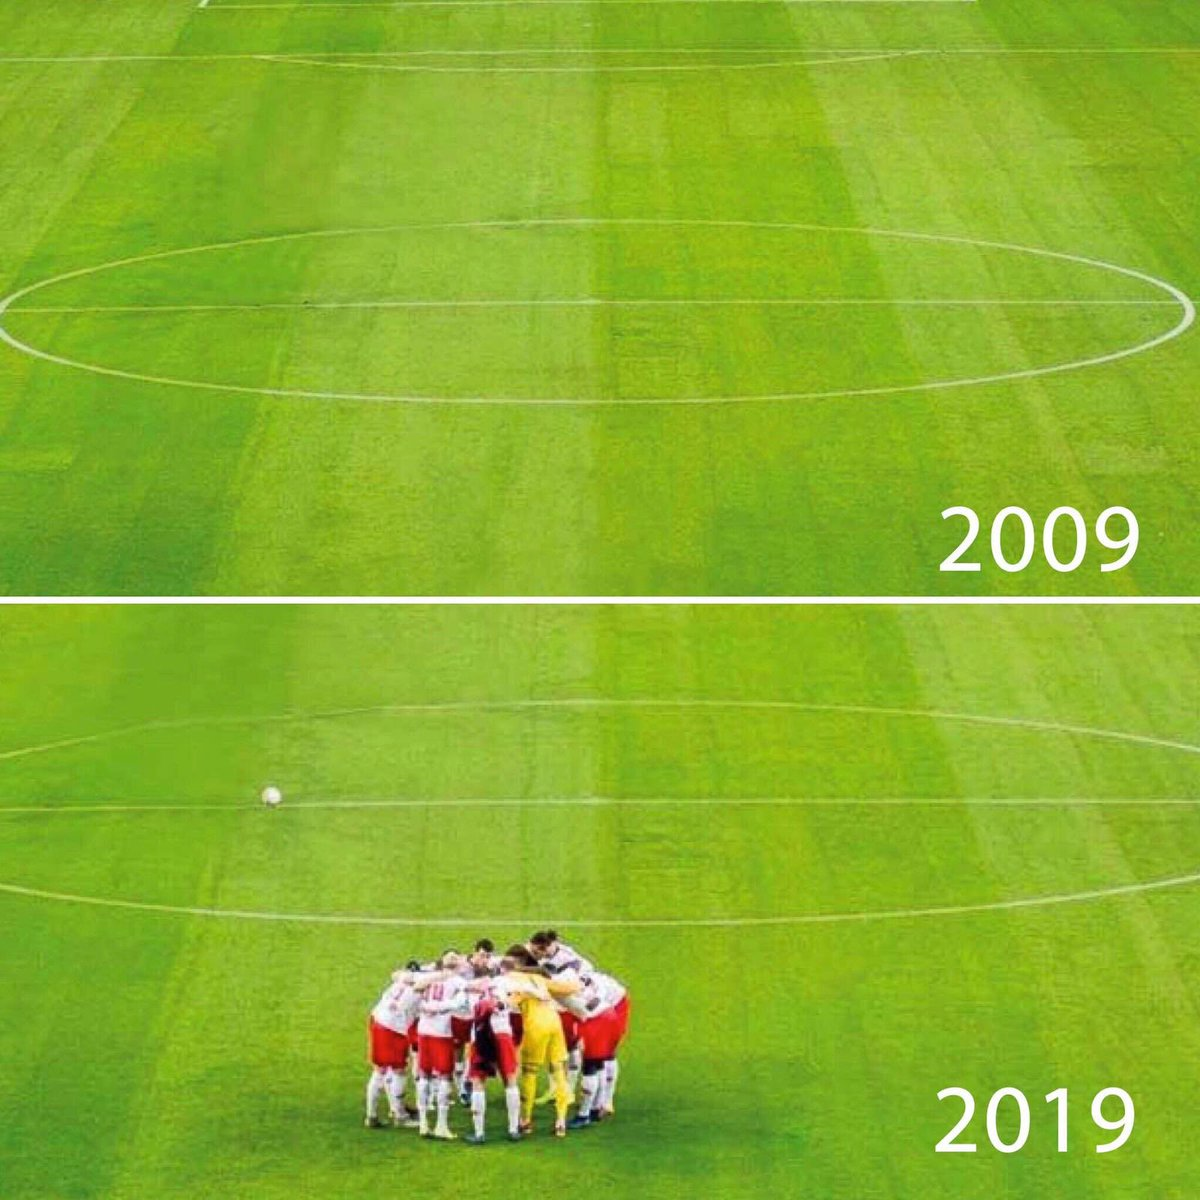 Just before our growth spurt... #10YearChallenge   #DieRotenBullen<br>http://pic.twitter.com/ZsVdW9G16U